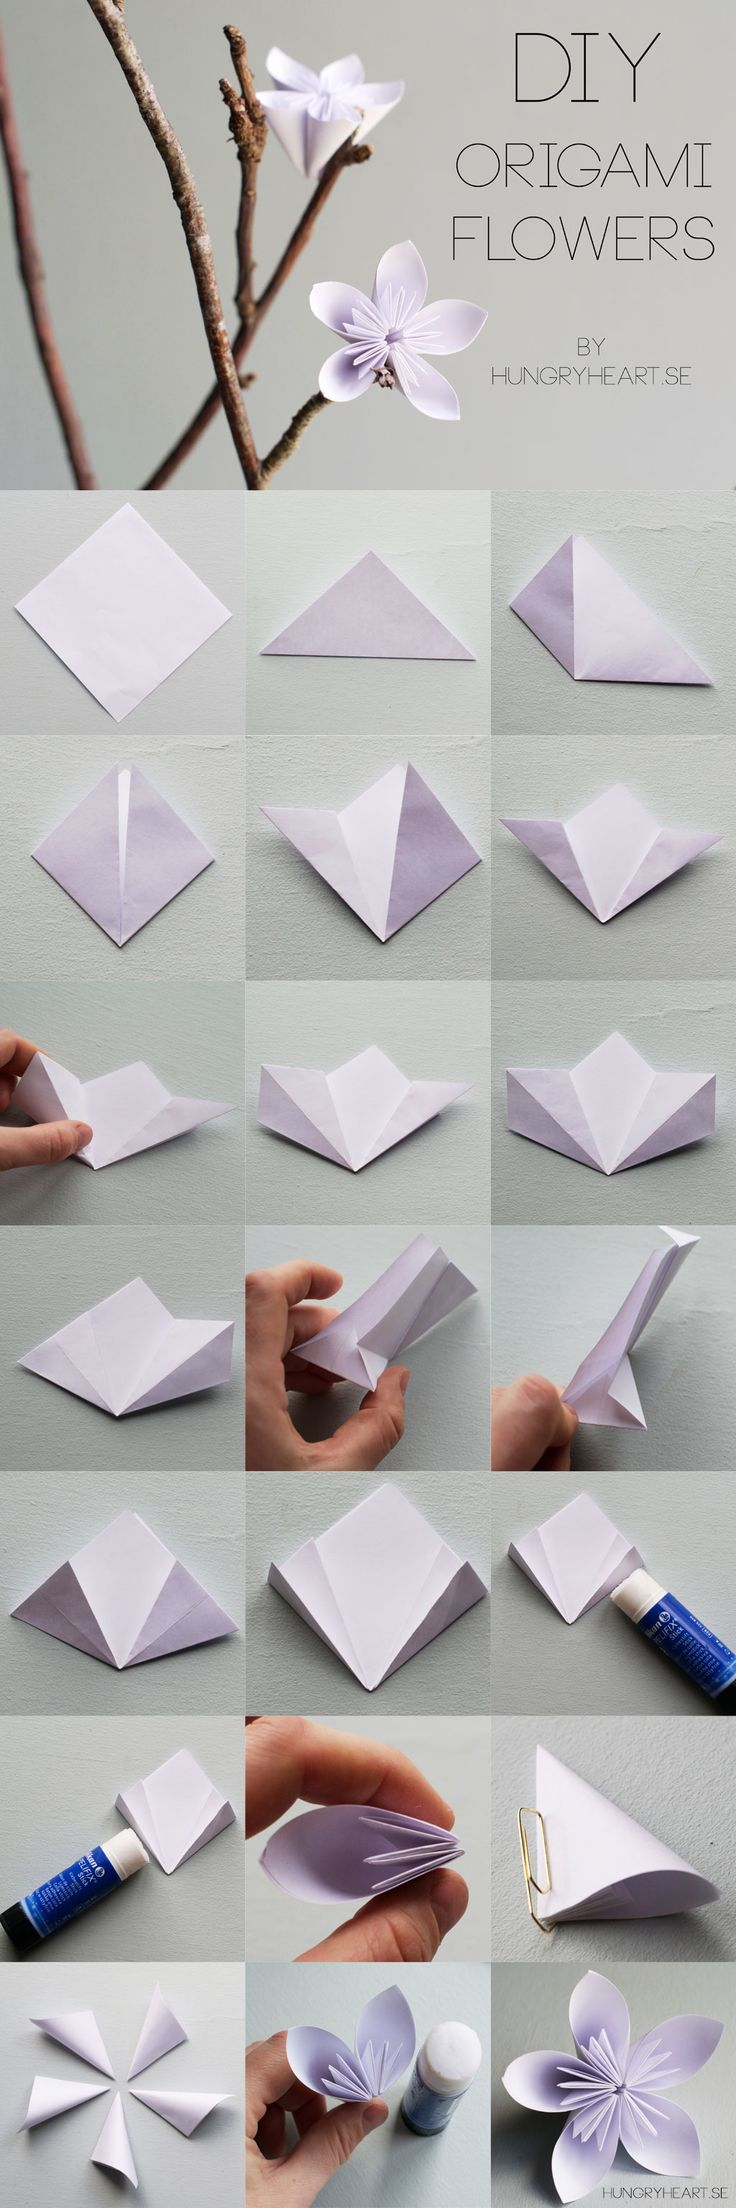 DIY origami flower Step-by-Step Tutorial |  HungryHeart.se